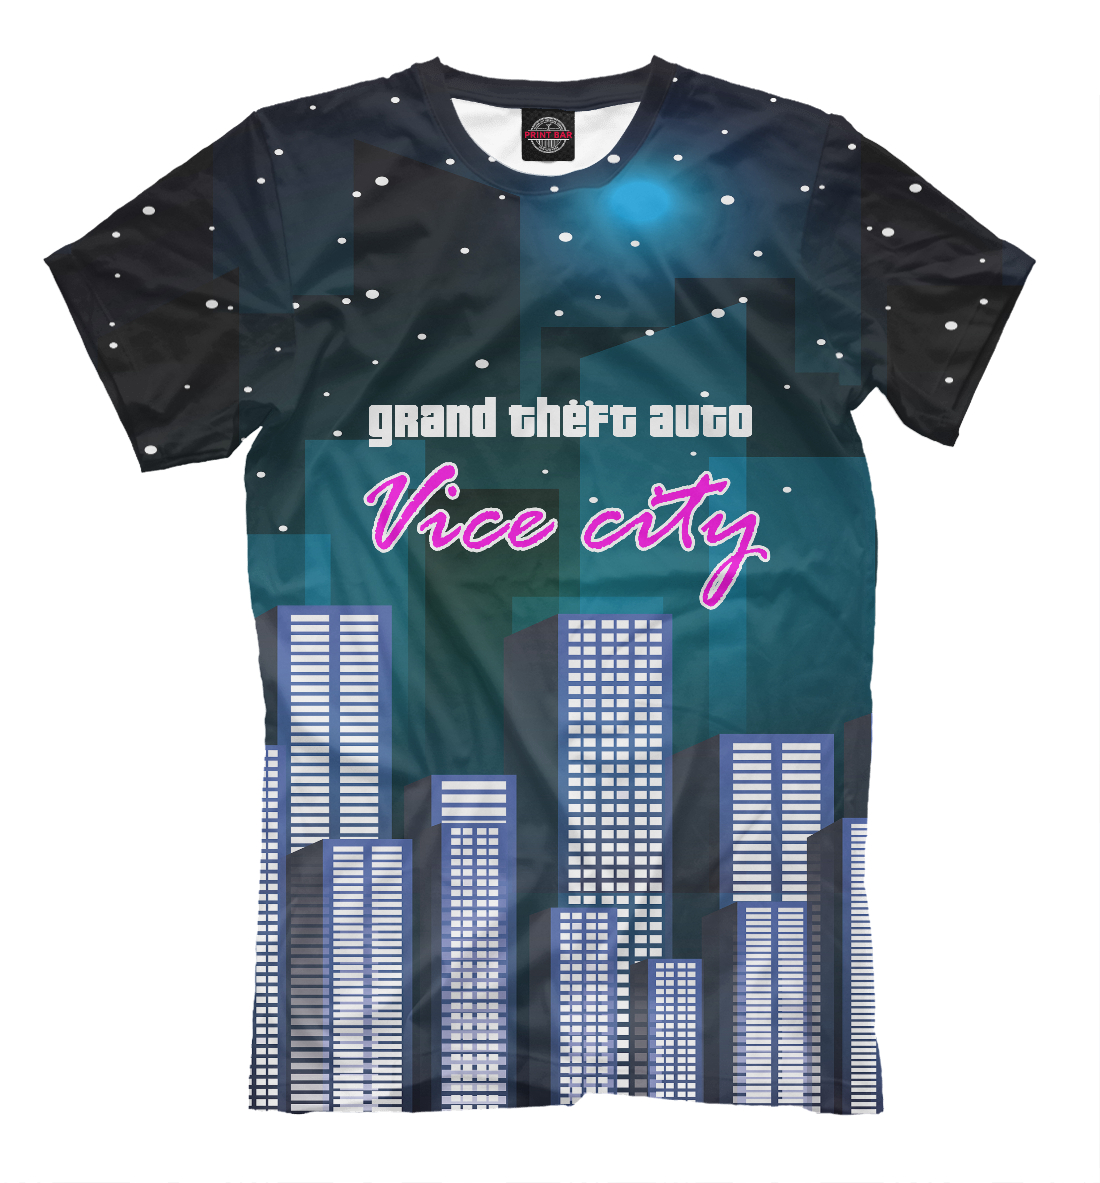 Купить Gta vice city, Printbar, Футболки, ROC-986391-fut-2